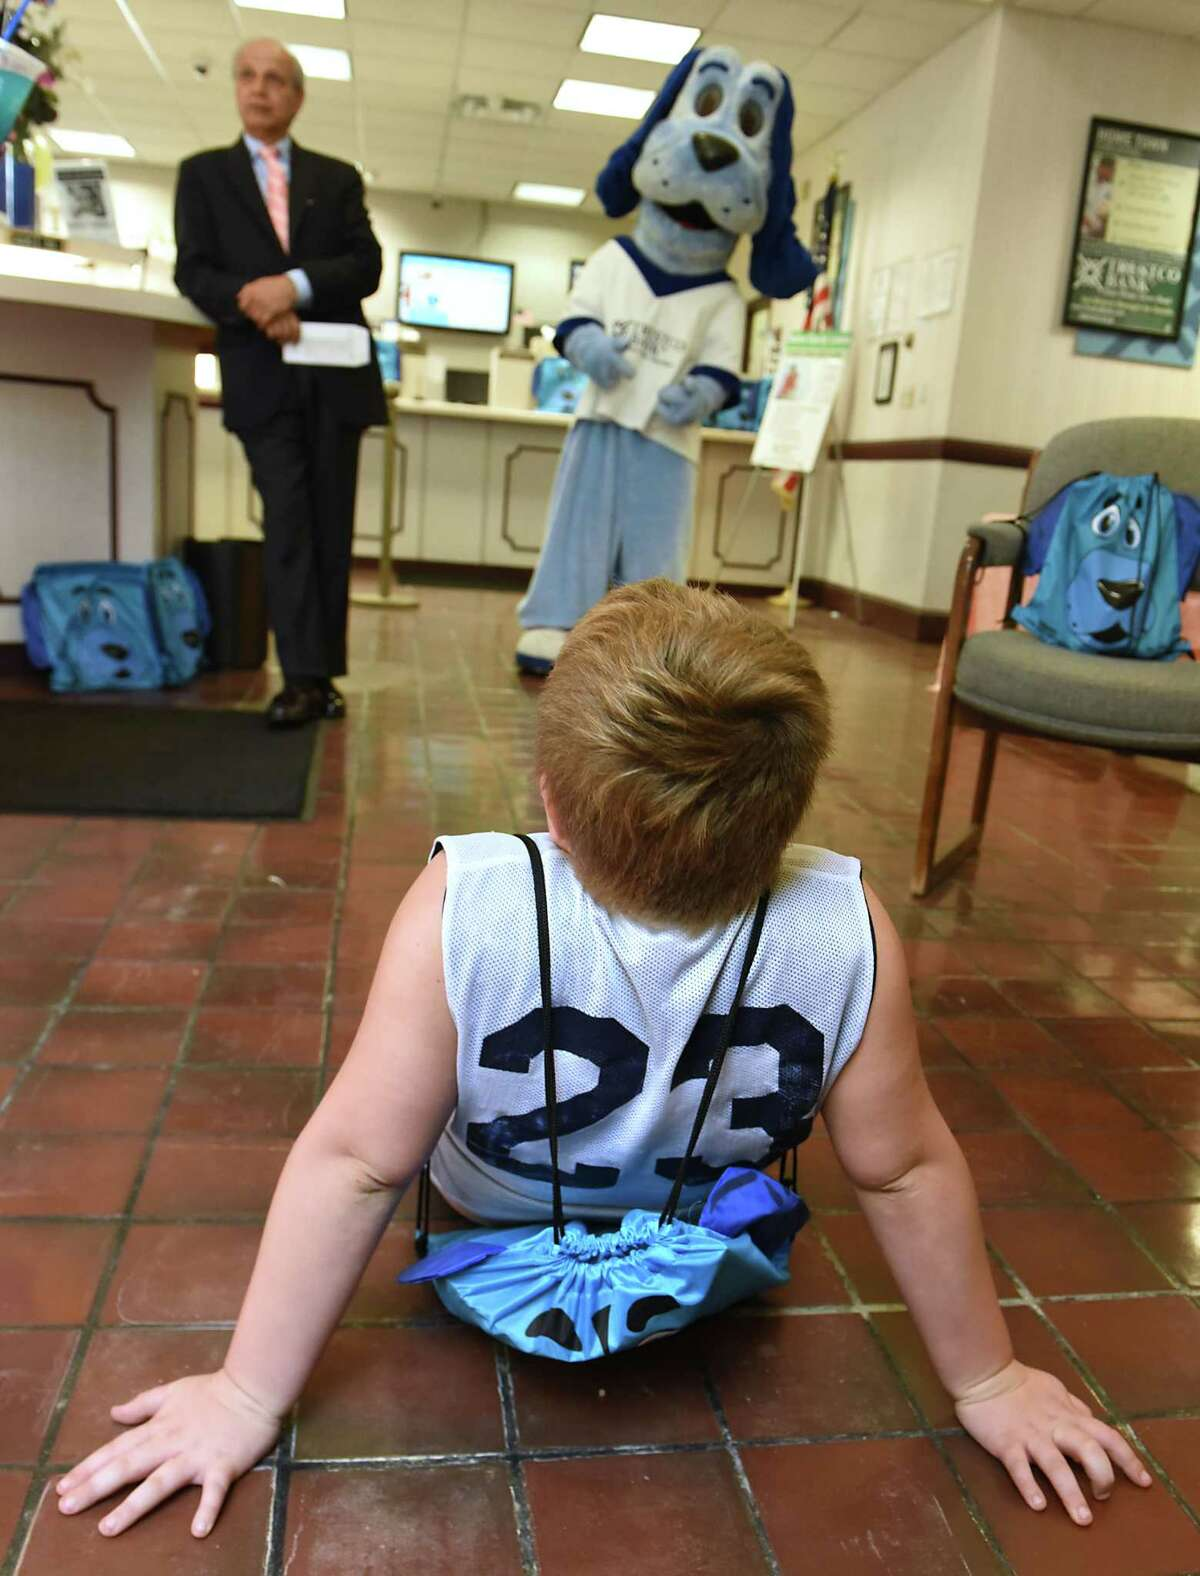 Riley Recore of Cohoes, 7, sits on the floor of Trustco Bank on a watches the mascot Trusty on Thursday, Aug. 30, 2018 in Troy, N.Y. Trustco Bank was giving away backpacks with school supplies and free lunch. Joseph Tardi, president of Joseph Tardi Associates, stands to the left. (Lori Van Buren/Times Union)